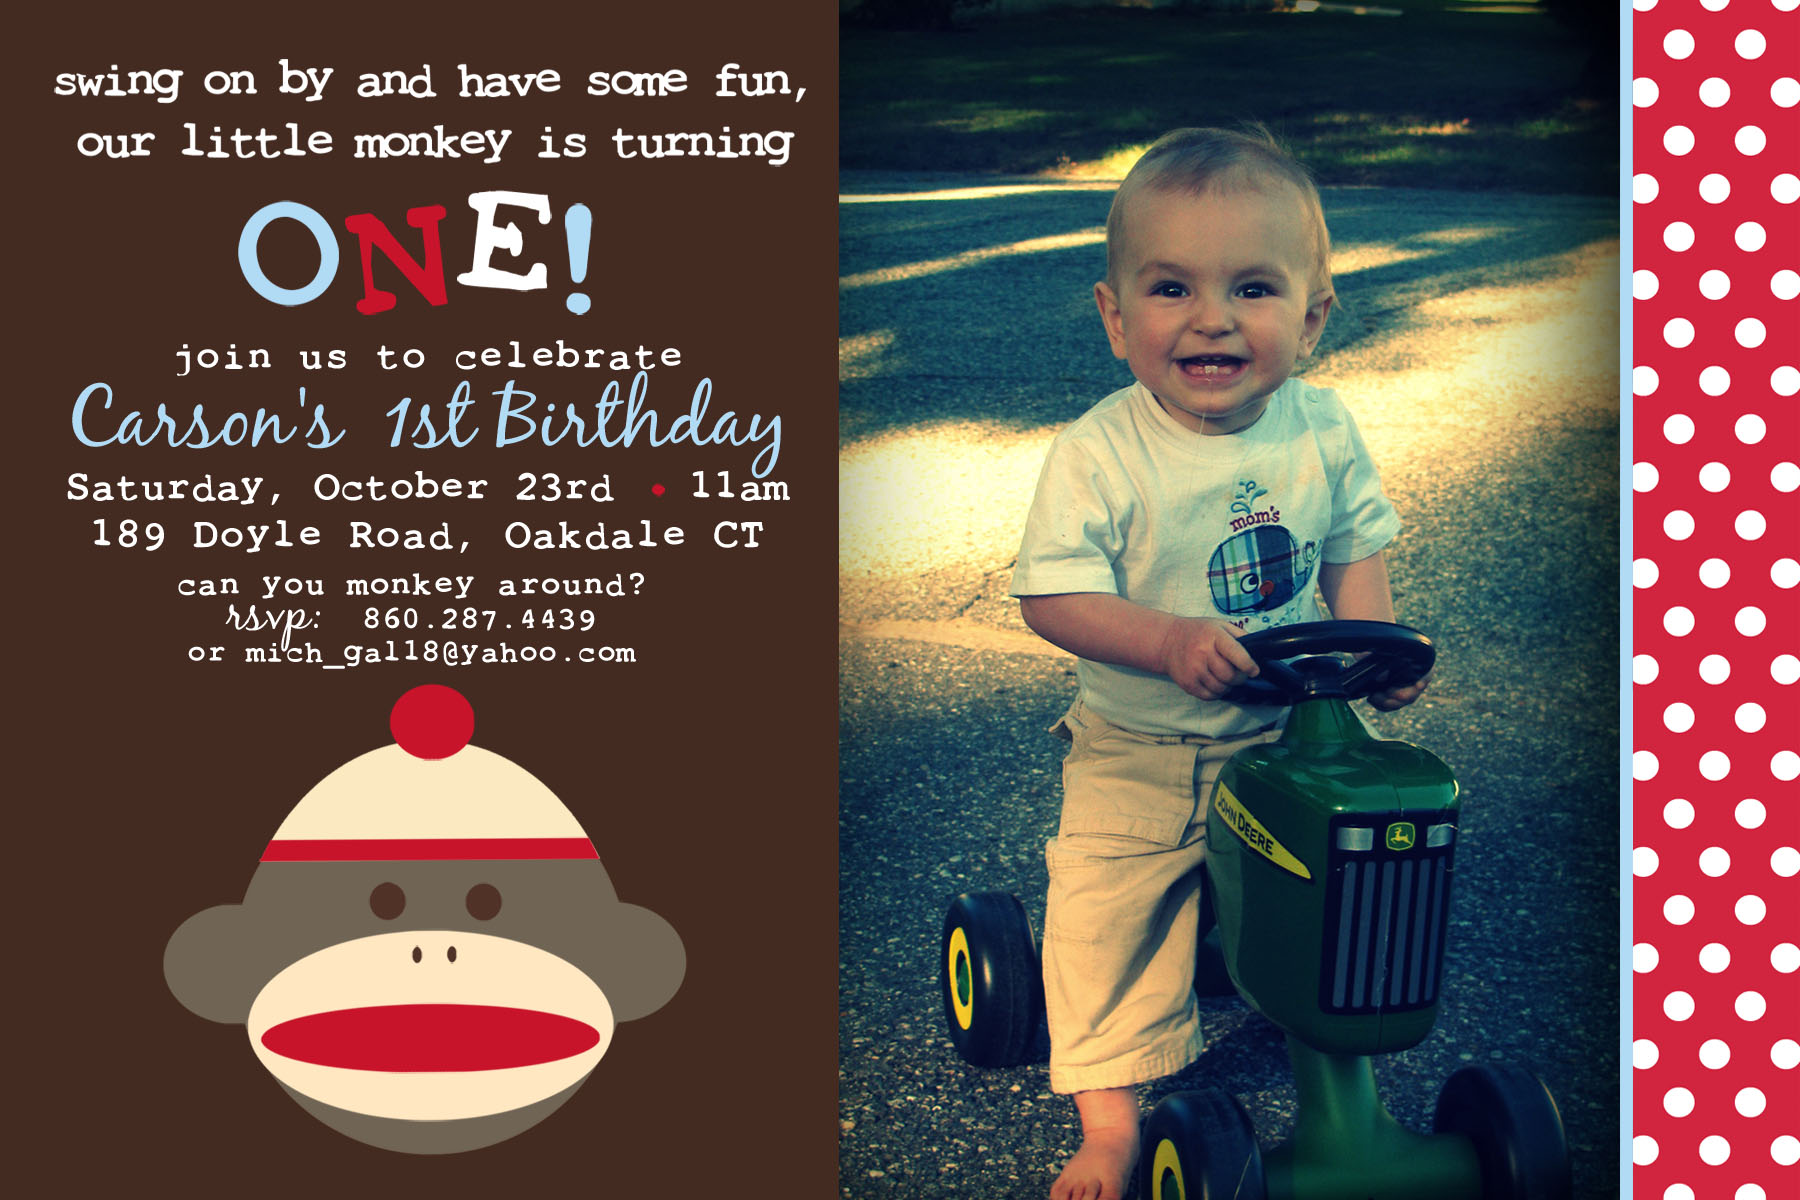 sock monkey birthday invitation template ; 844-sock-monkey-invitation-template-sock-monkey-invitation-template-29-awesome-sock-monkey-birthday-invitation-gallery-invitation-card-idea-for